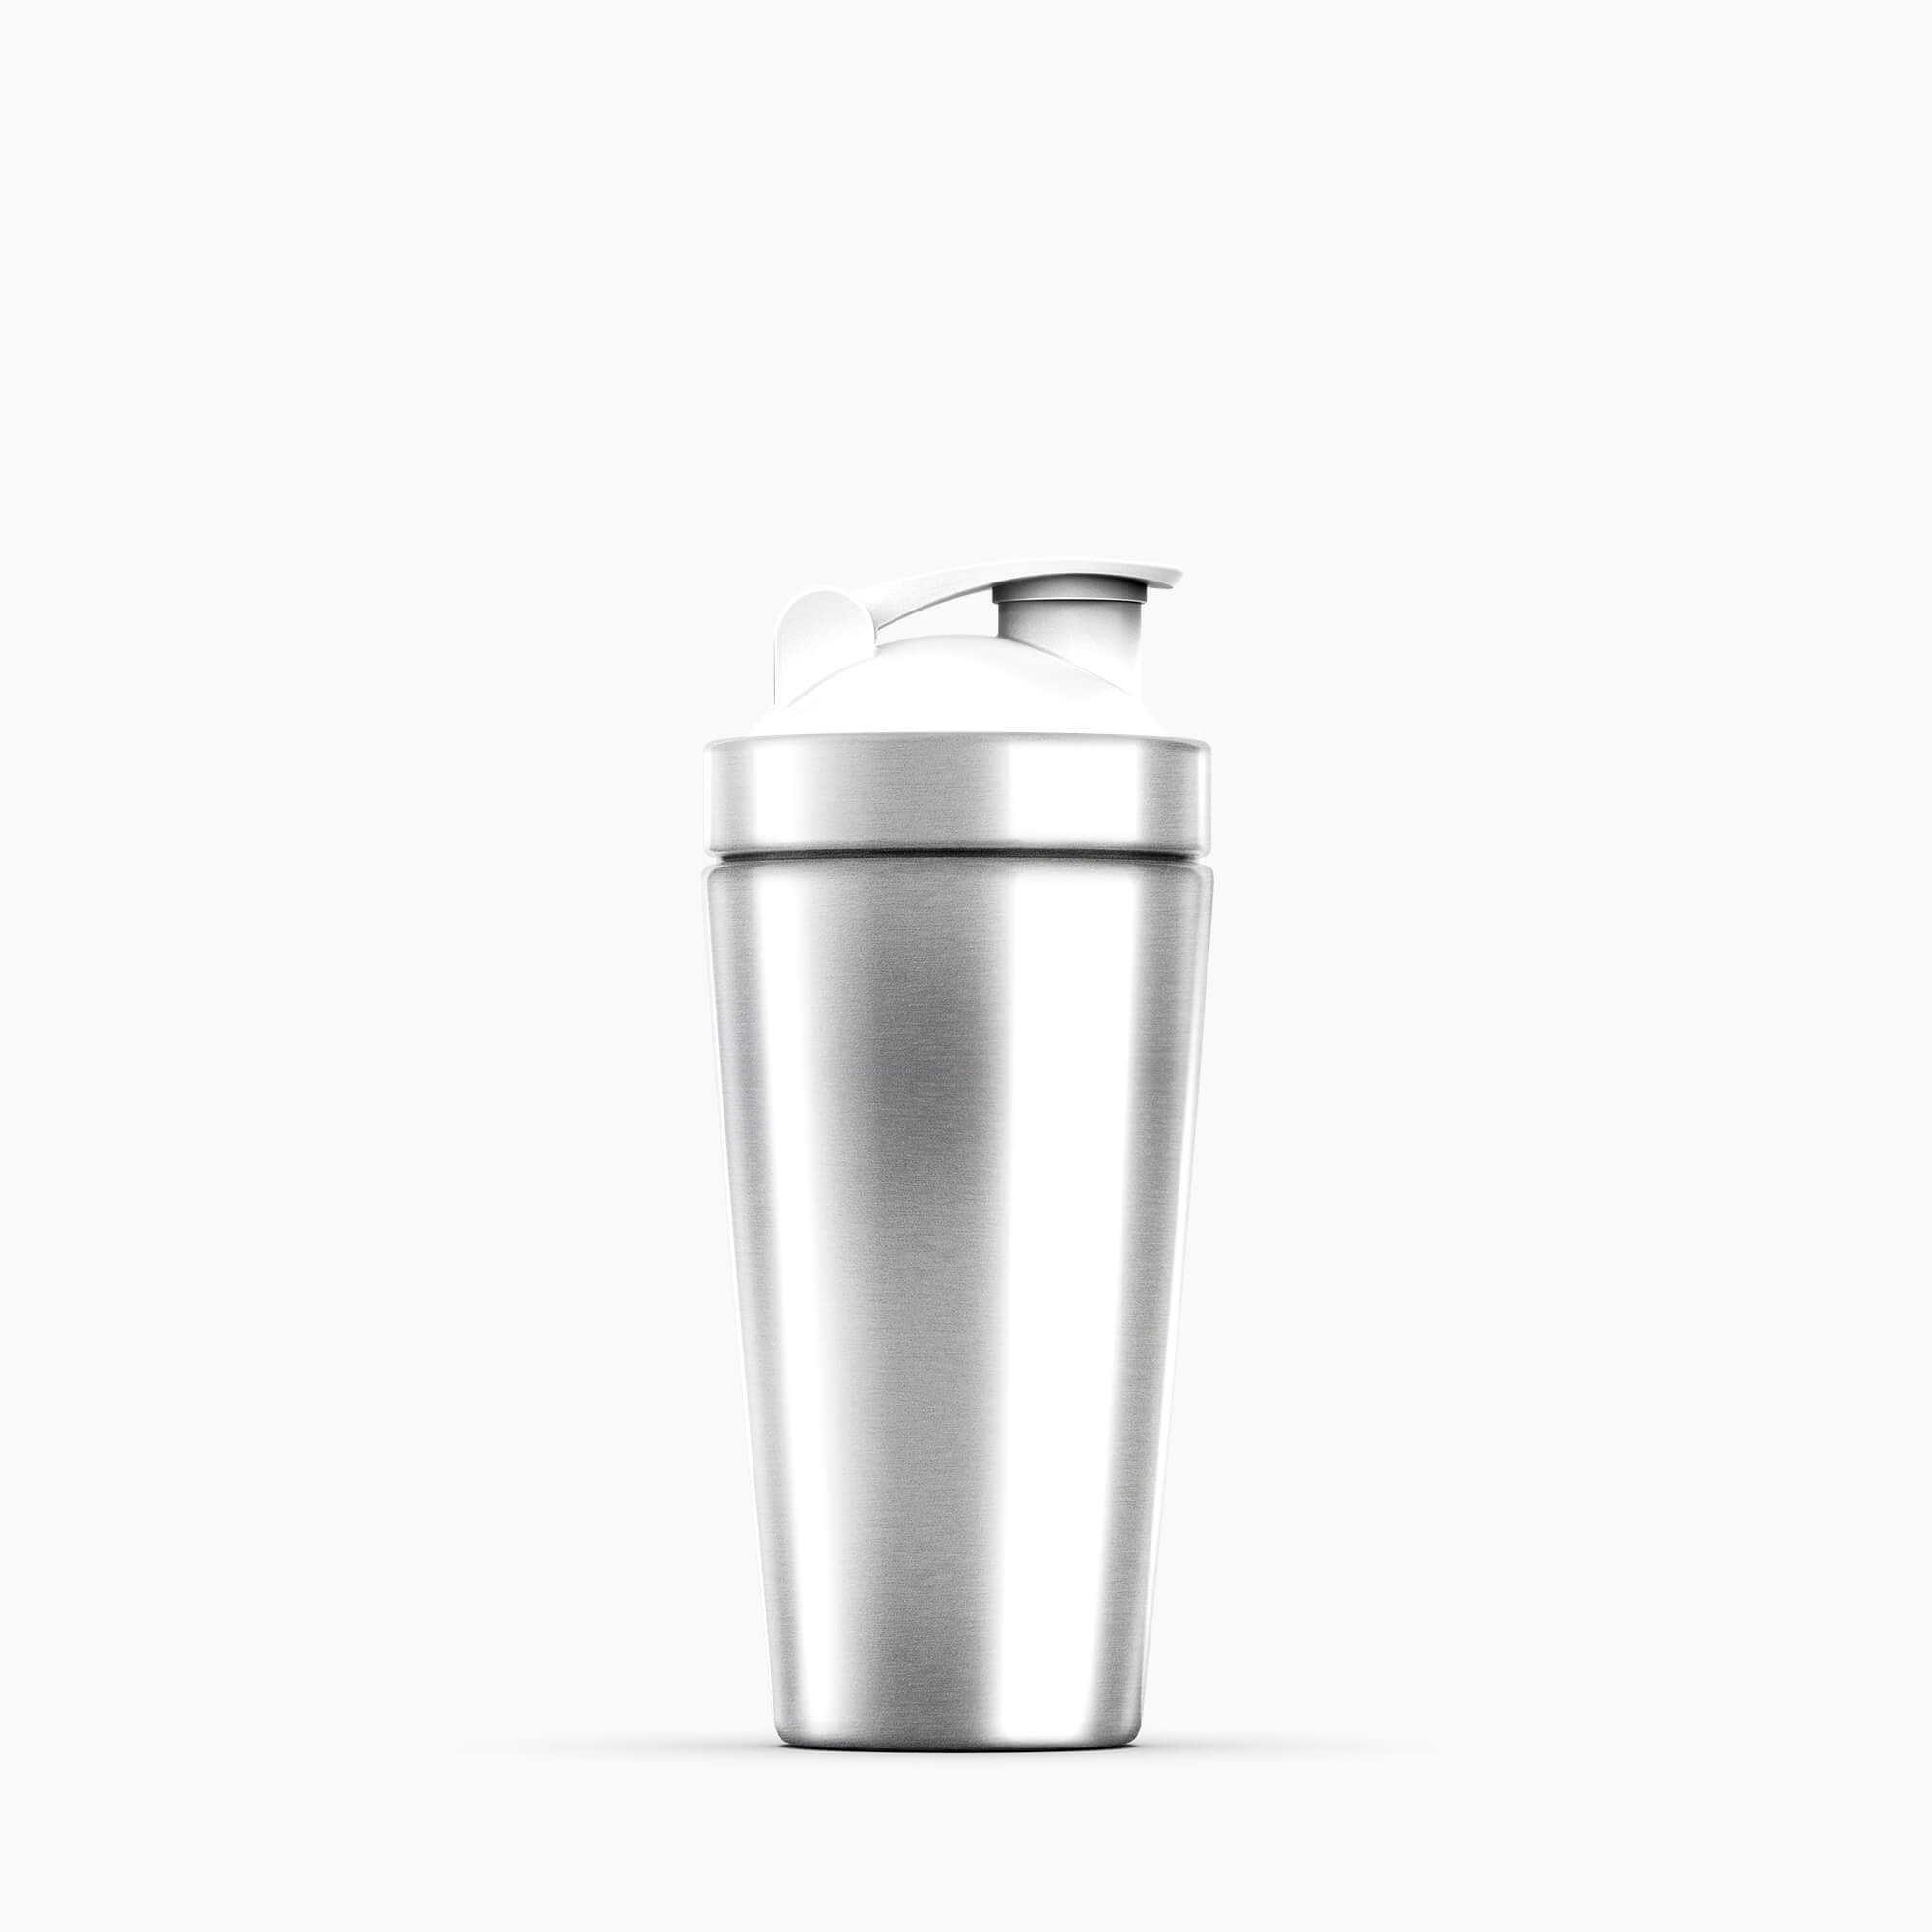 Blank Free Shaker Mockup PSD Template